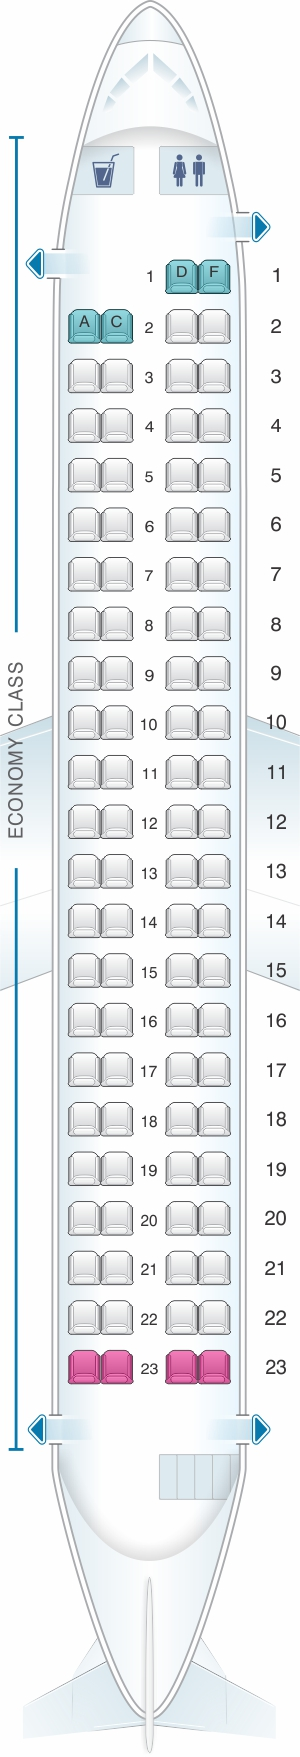 Seat map for SpiceJet Bombardier Q400 config.2